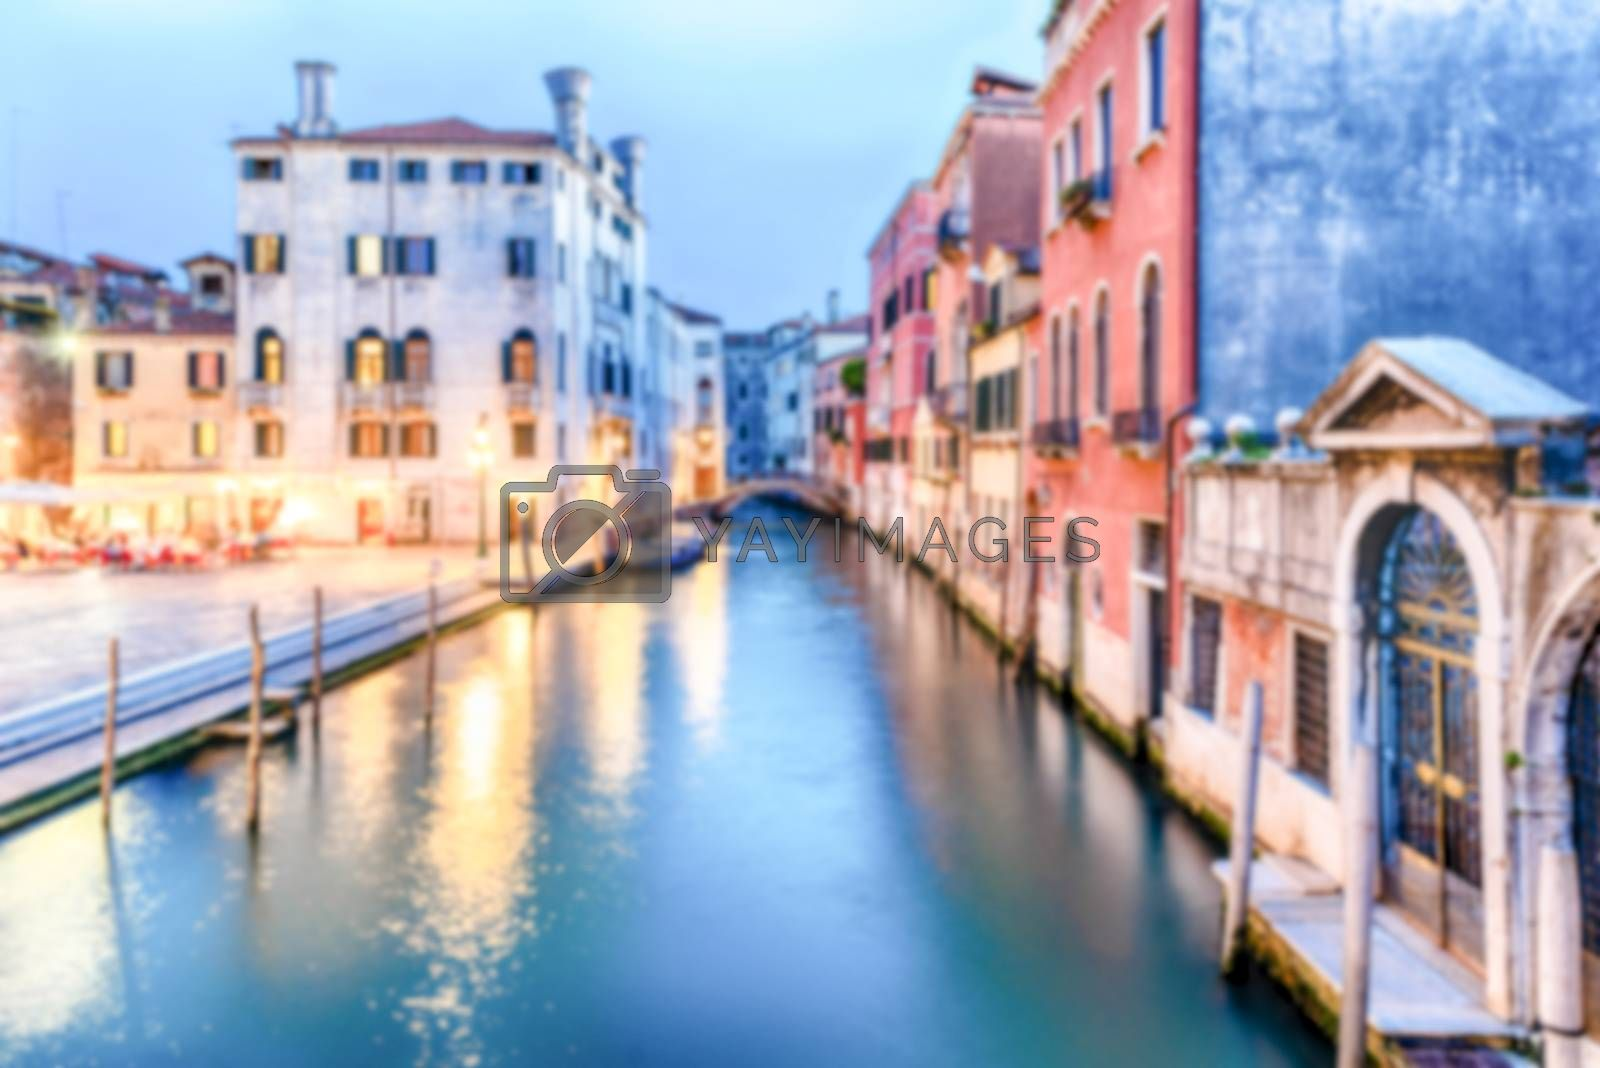 Defocused background of picturesque canal with beautiful reflections in Castello district of Venice, Italy. Intentionally blurred post production for bokeh effect